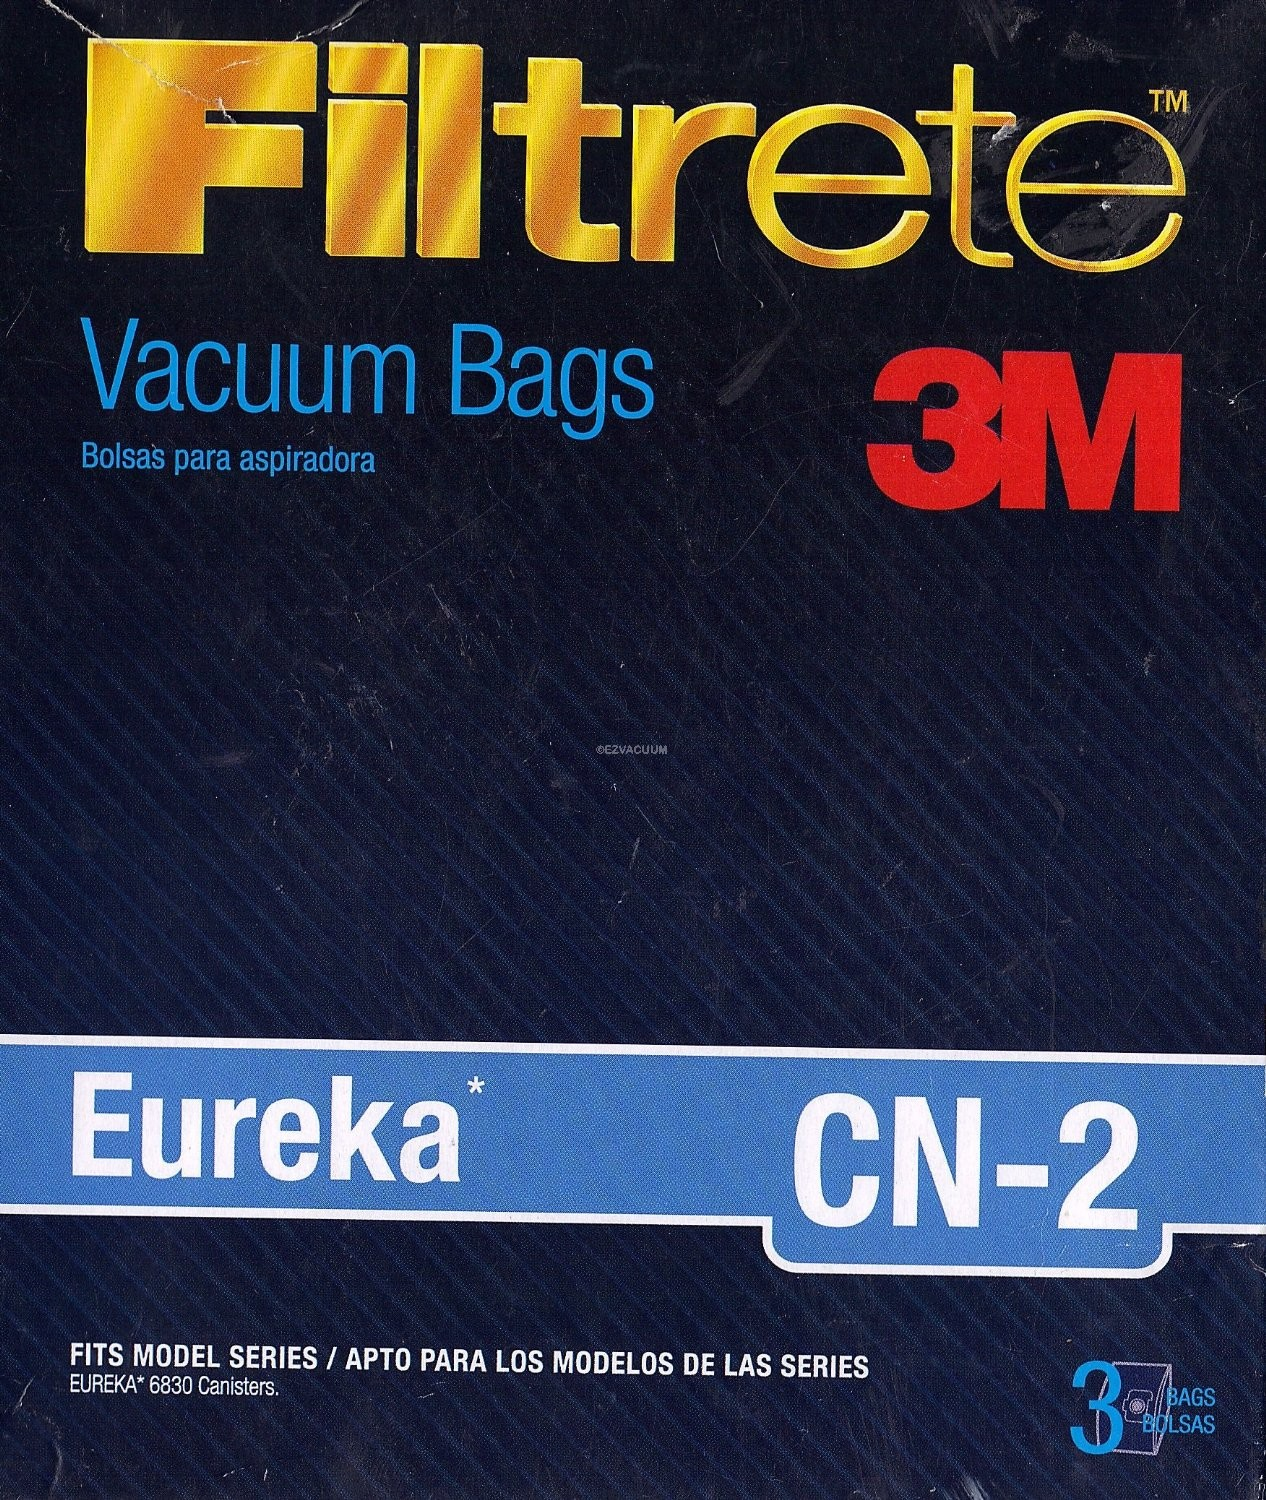 Eureka Type CN-2 Synthetic Bags by Filltrete 3M - 3 Pack